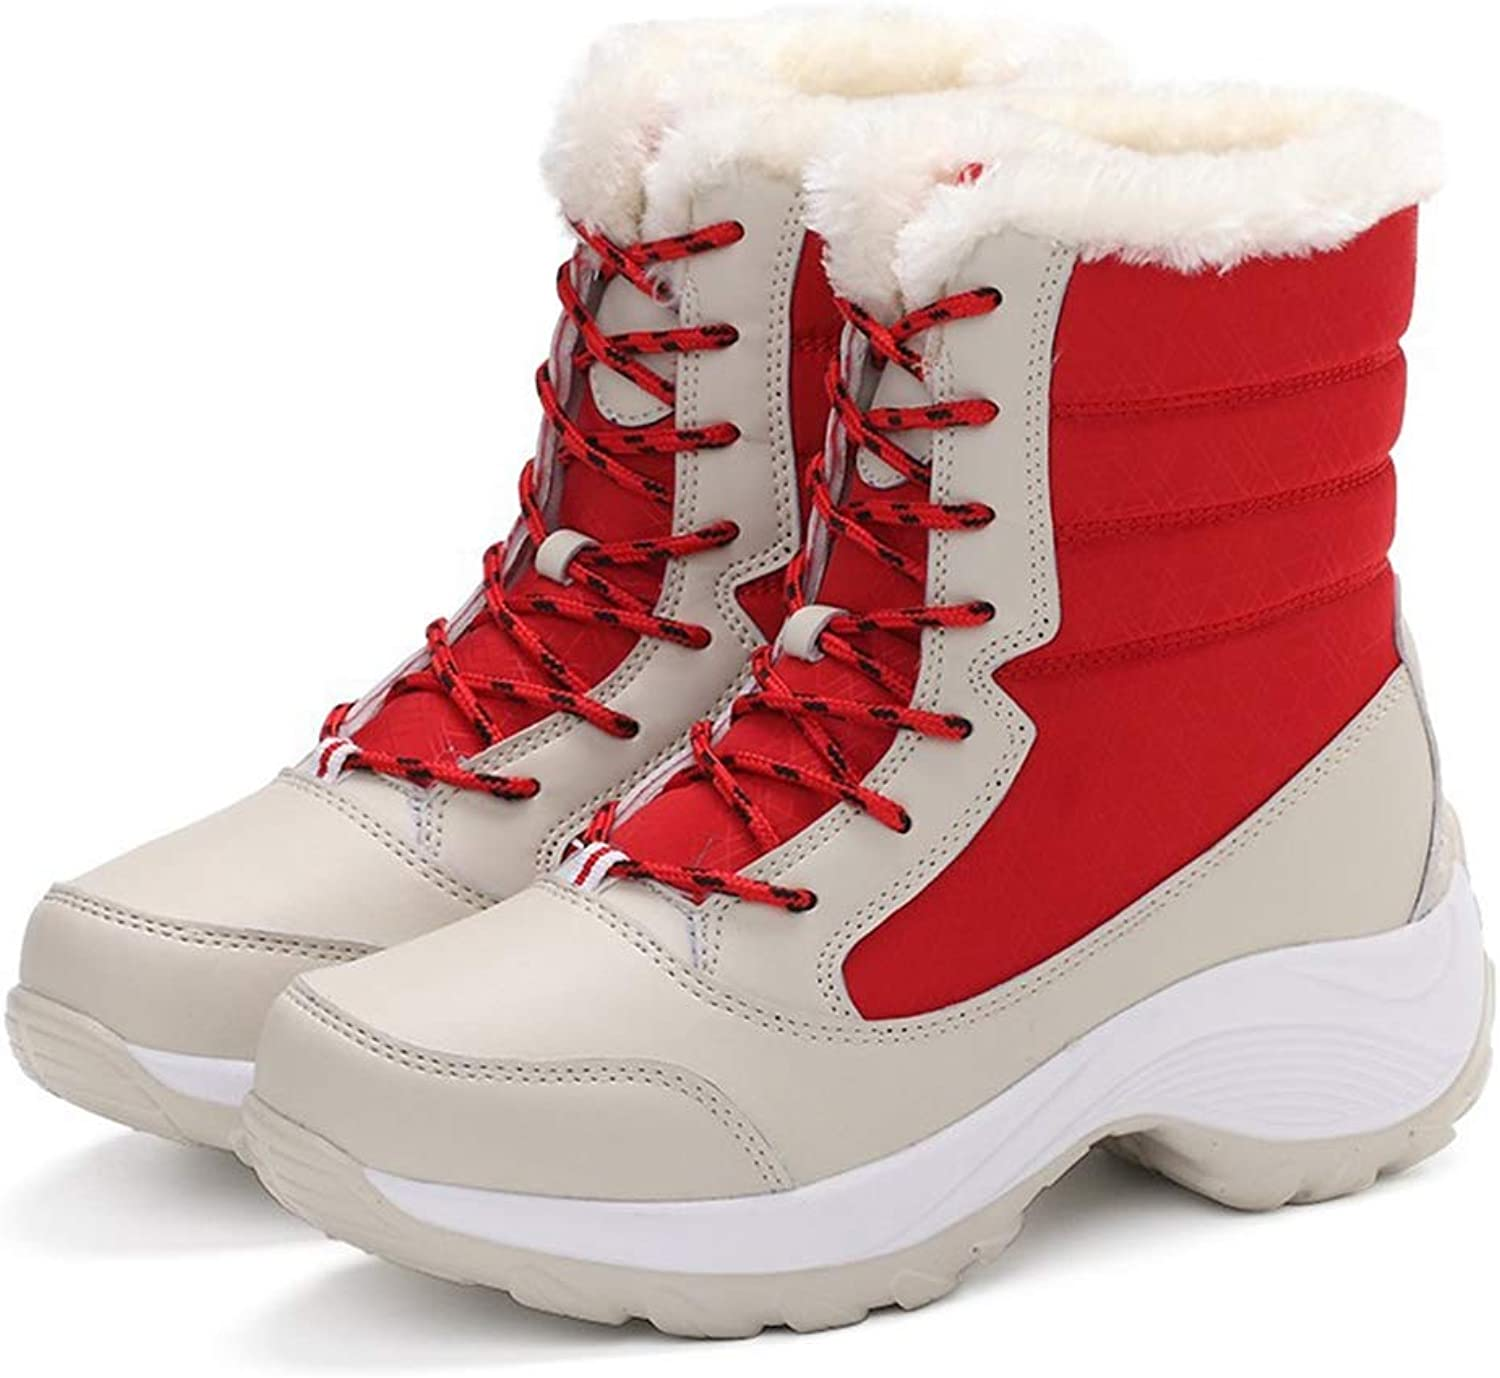 T-JULY New Women Boots Non-Slip Waterproof Winter Ankle Snow Boots Mother Winter Warm Snow Boots with Thick Fur